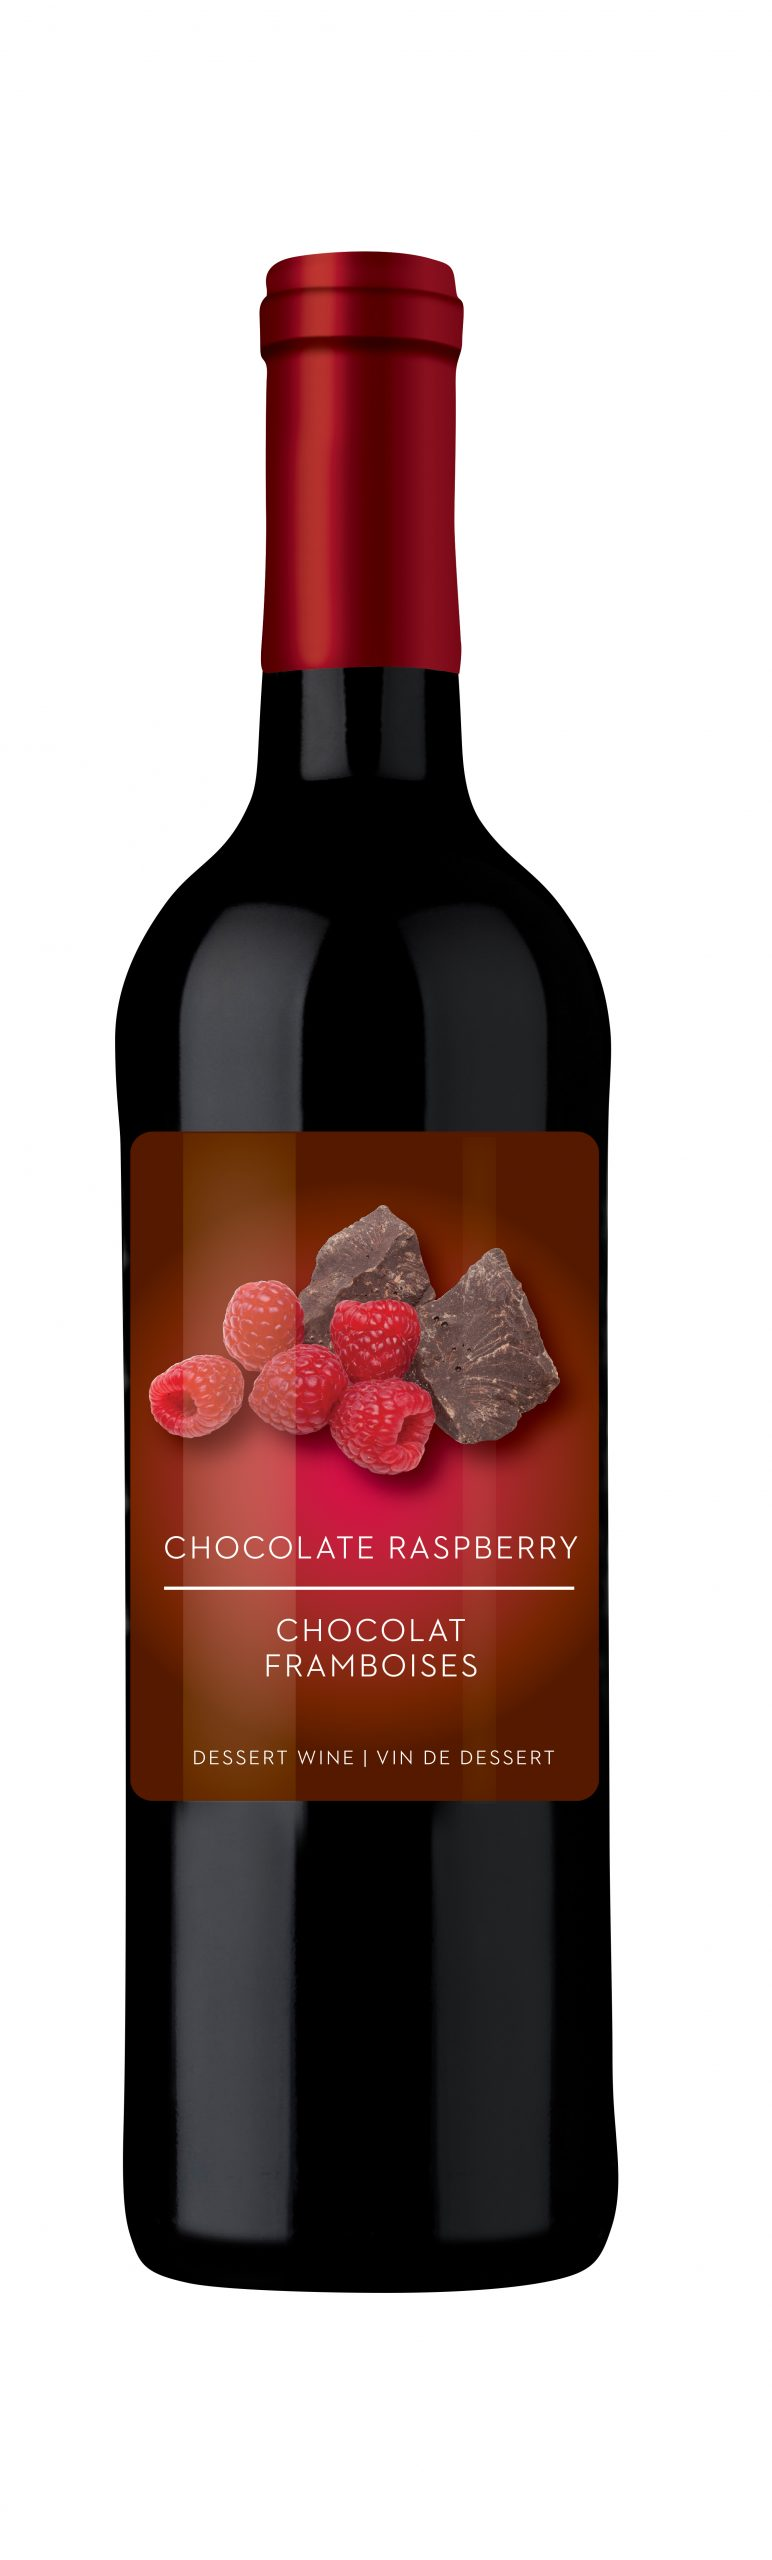 Winexpert Apres Chocolate Raspberry Dessert Wine-0